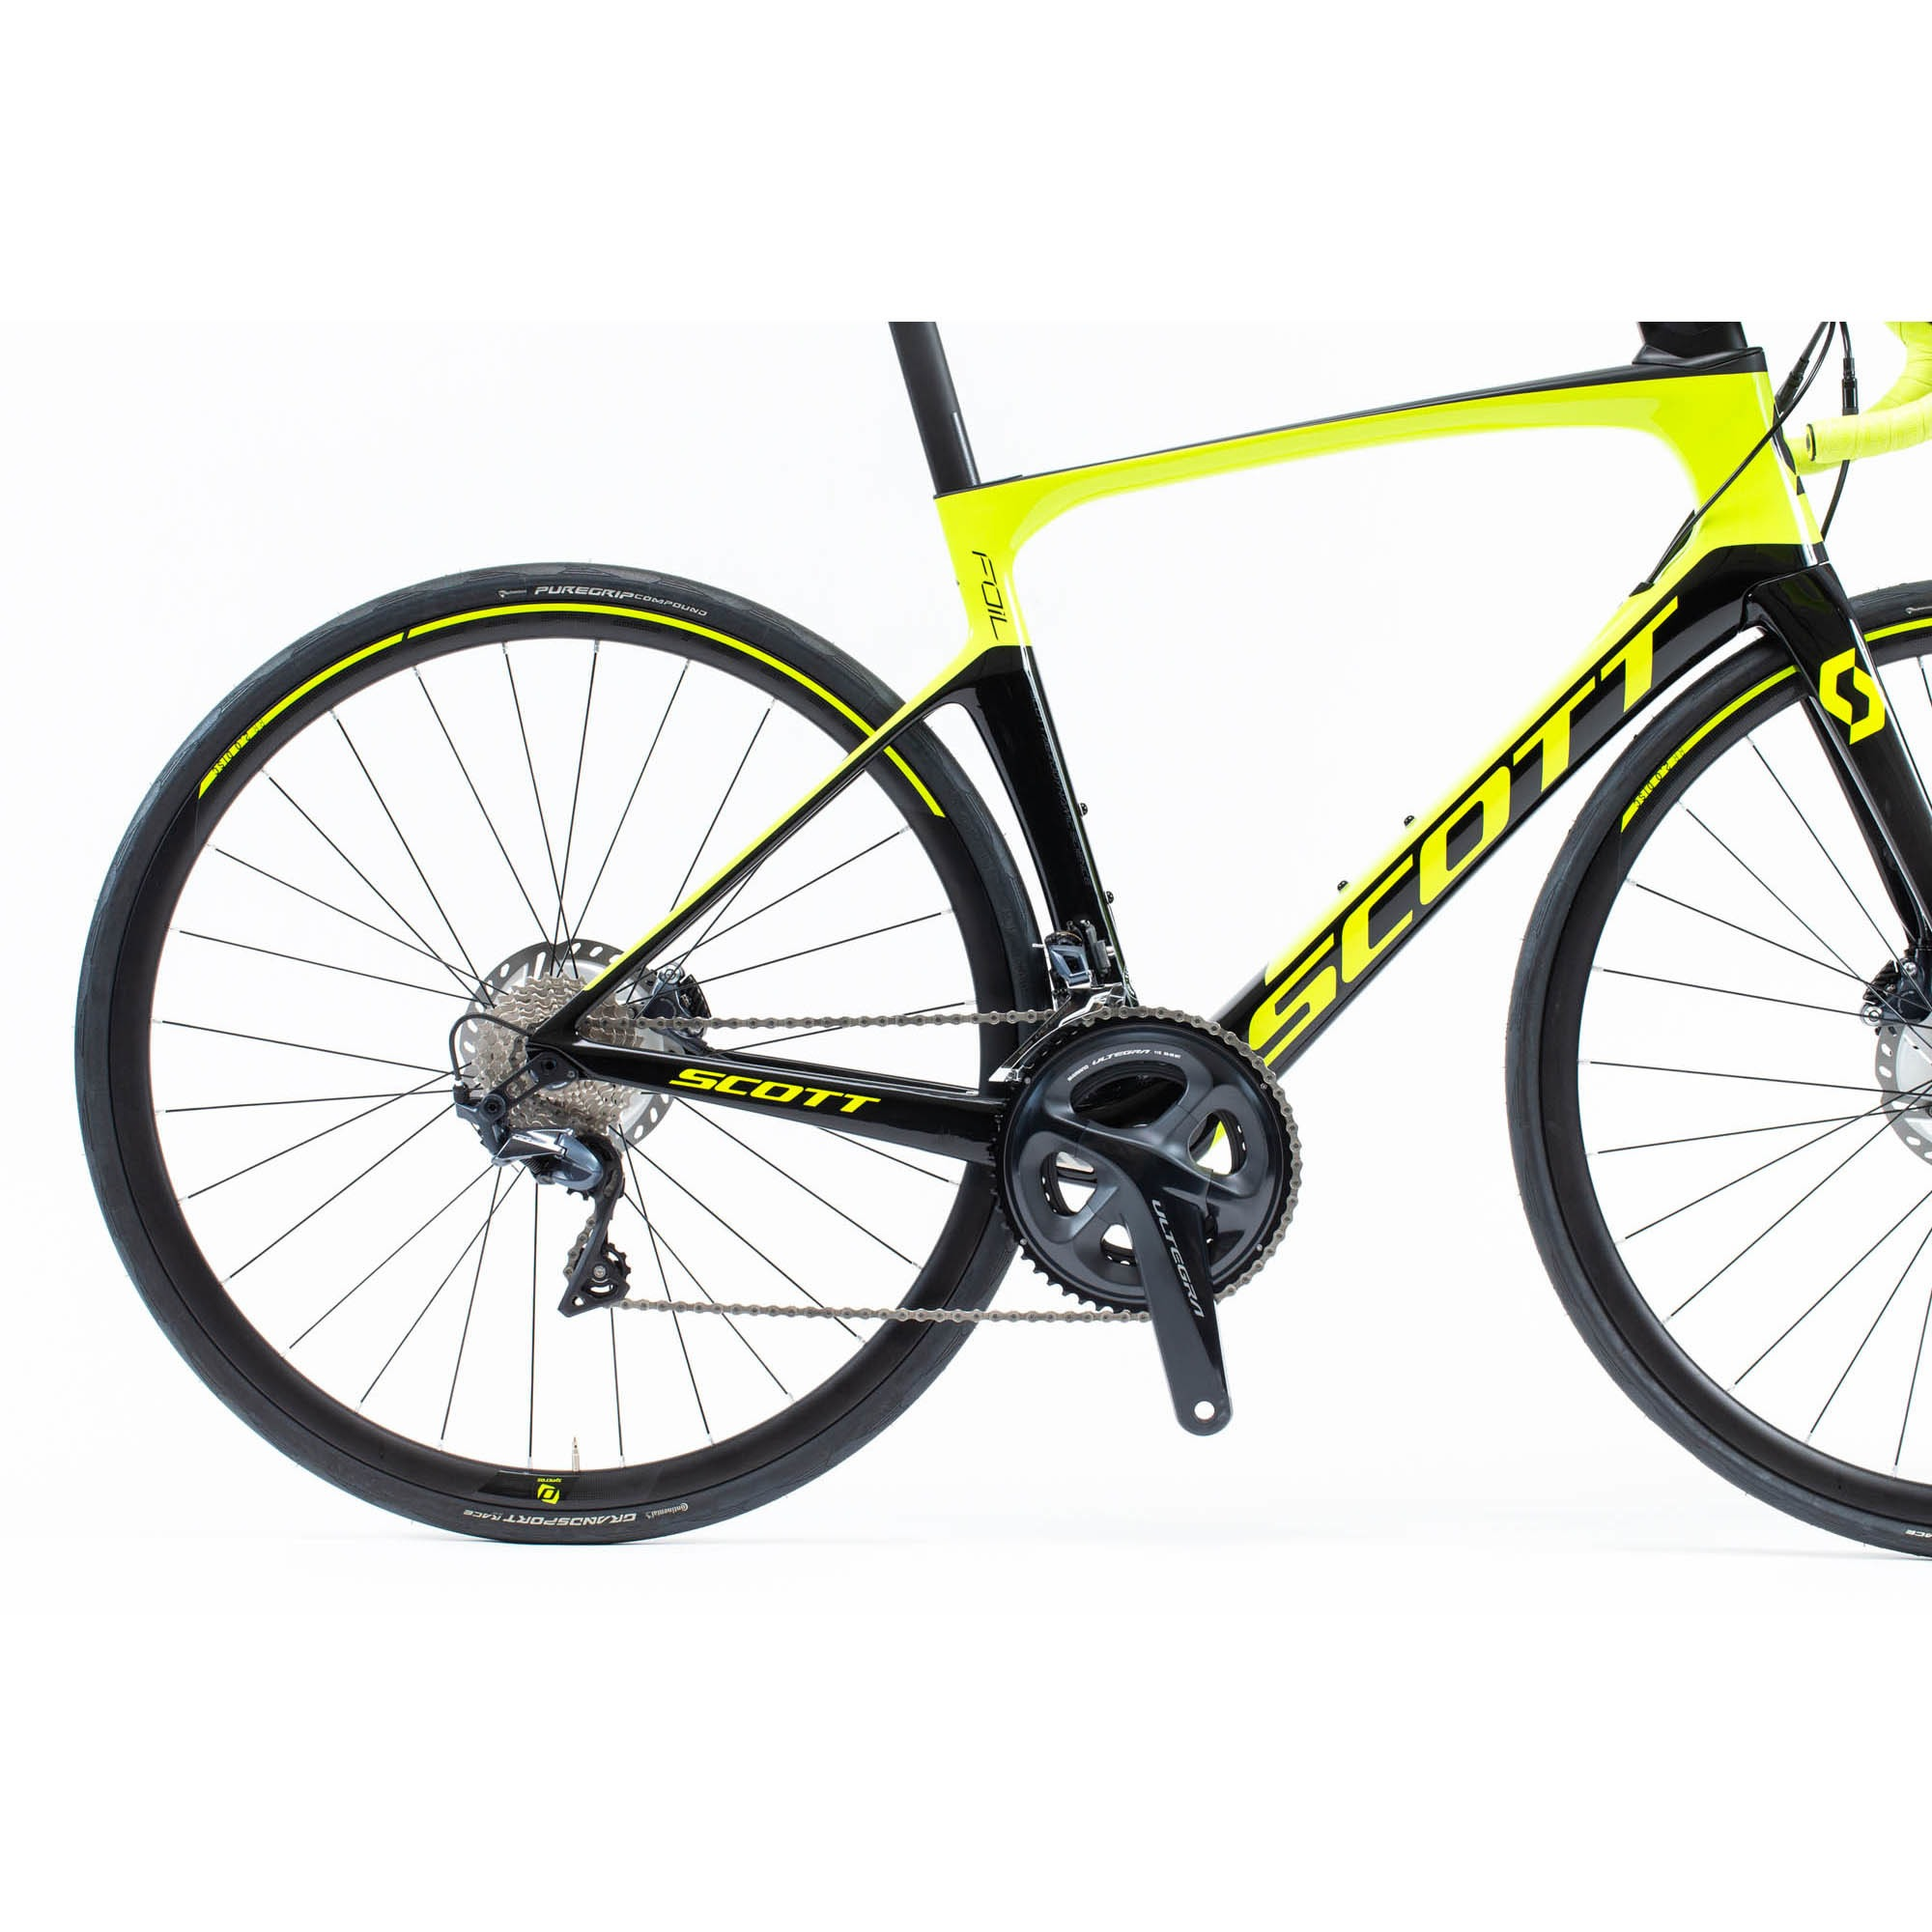 SCOTT Foil 20 disc yellow/black Bike